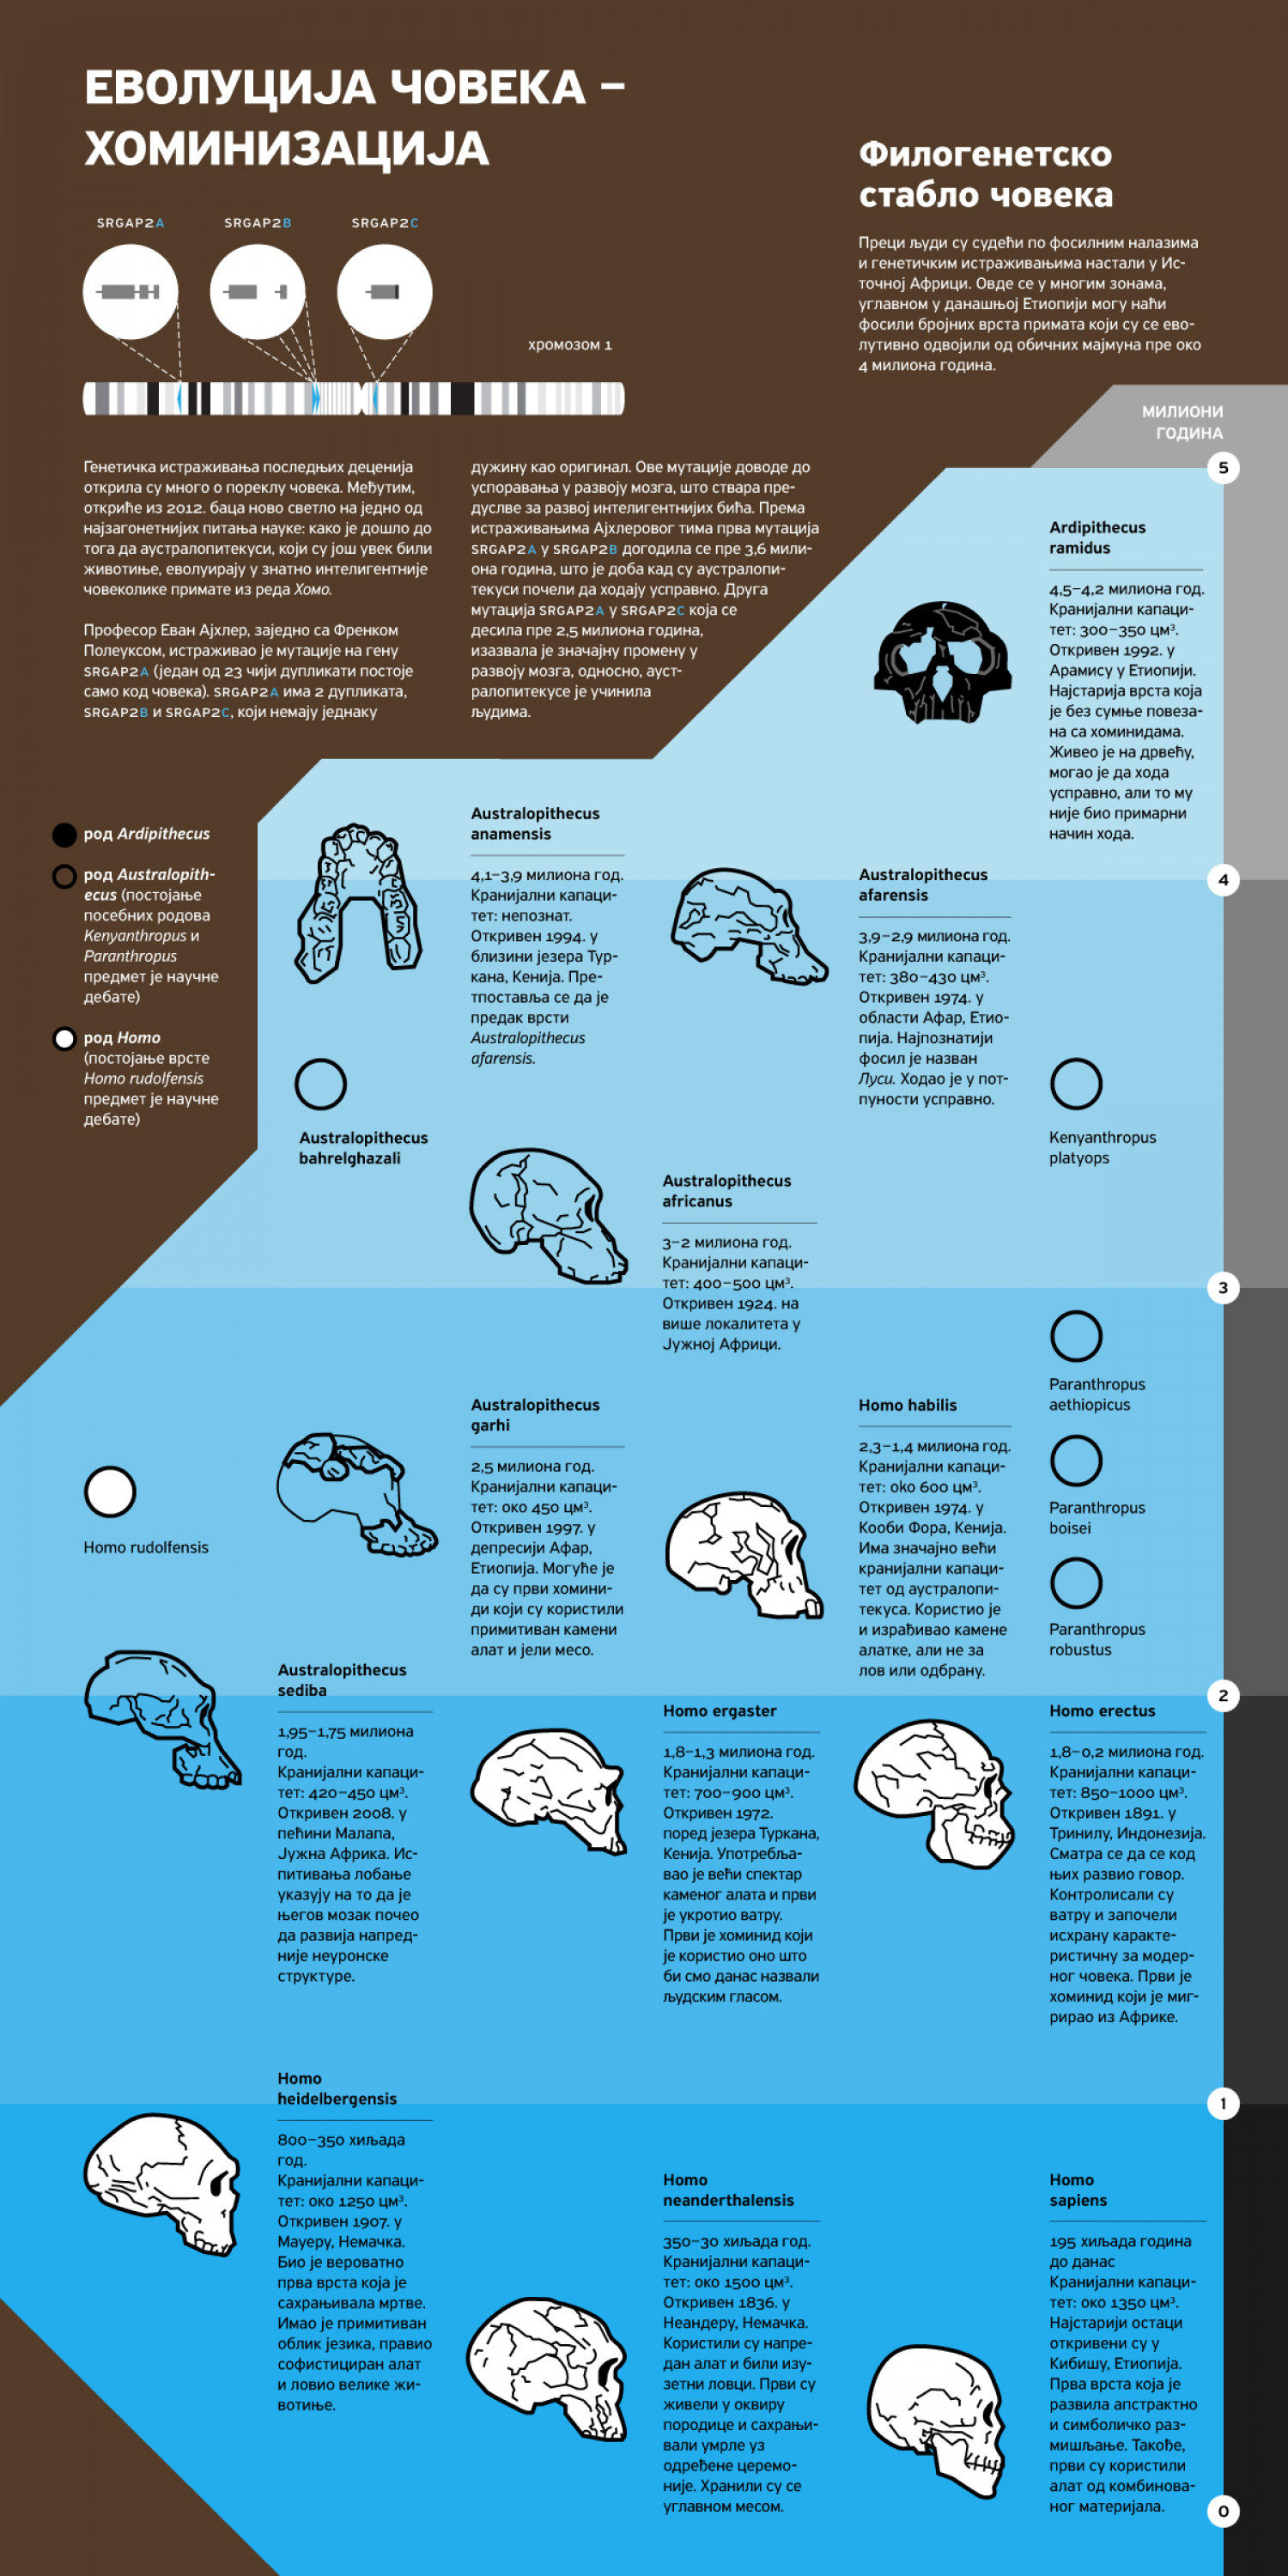 The Evolution of Man Infographic